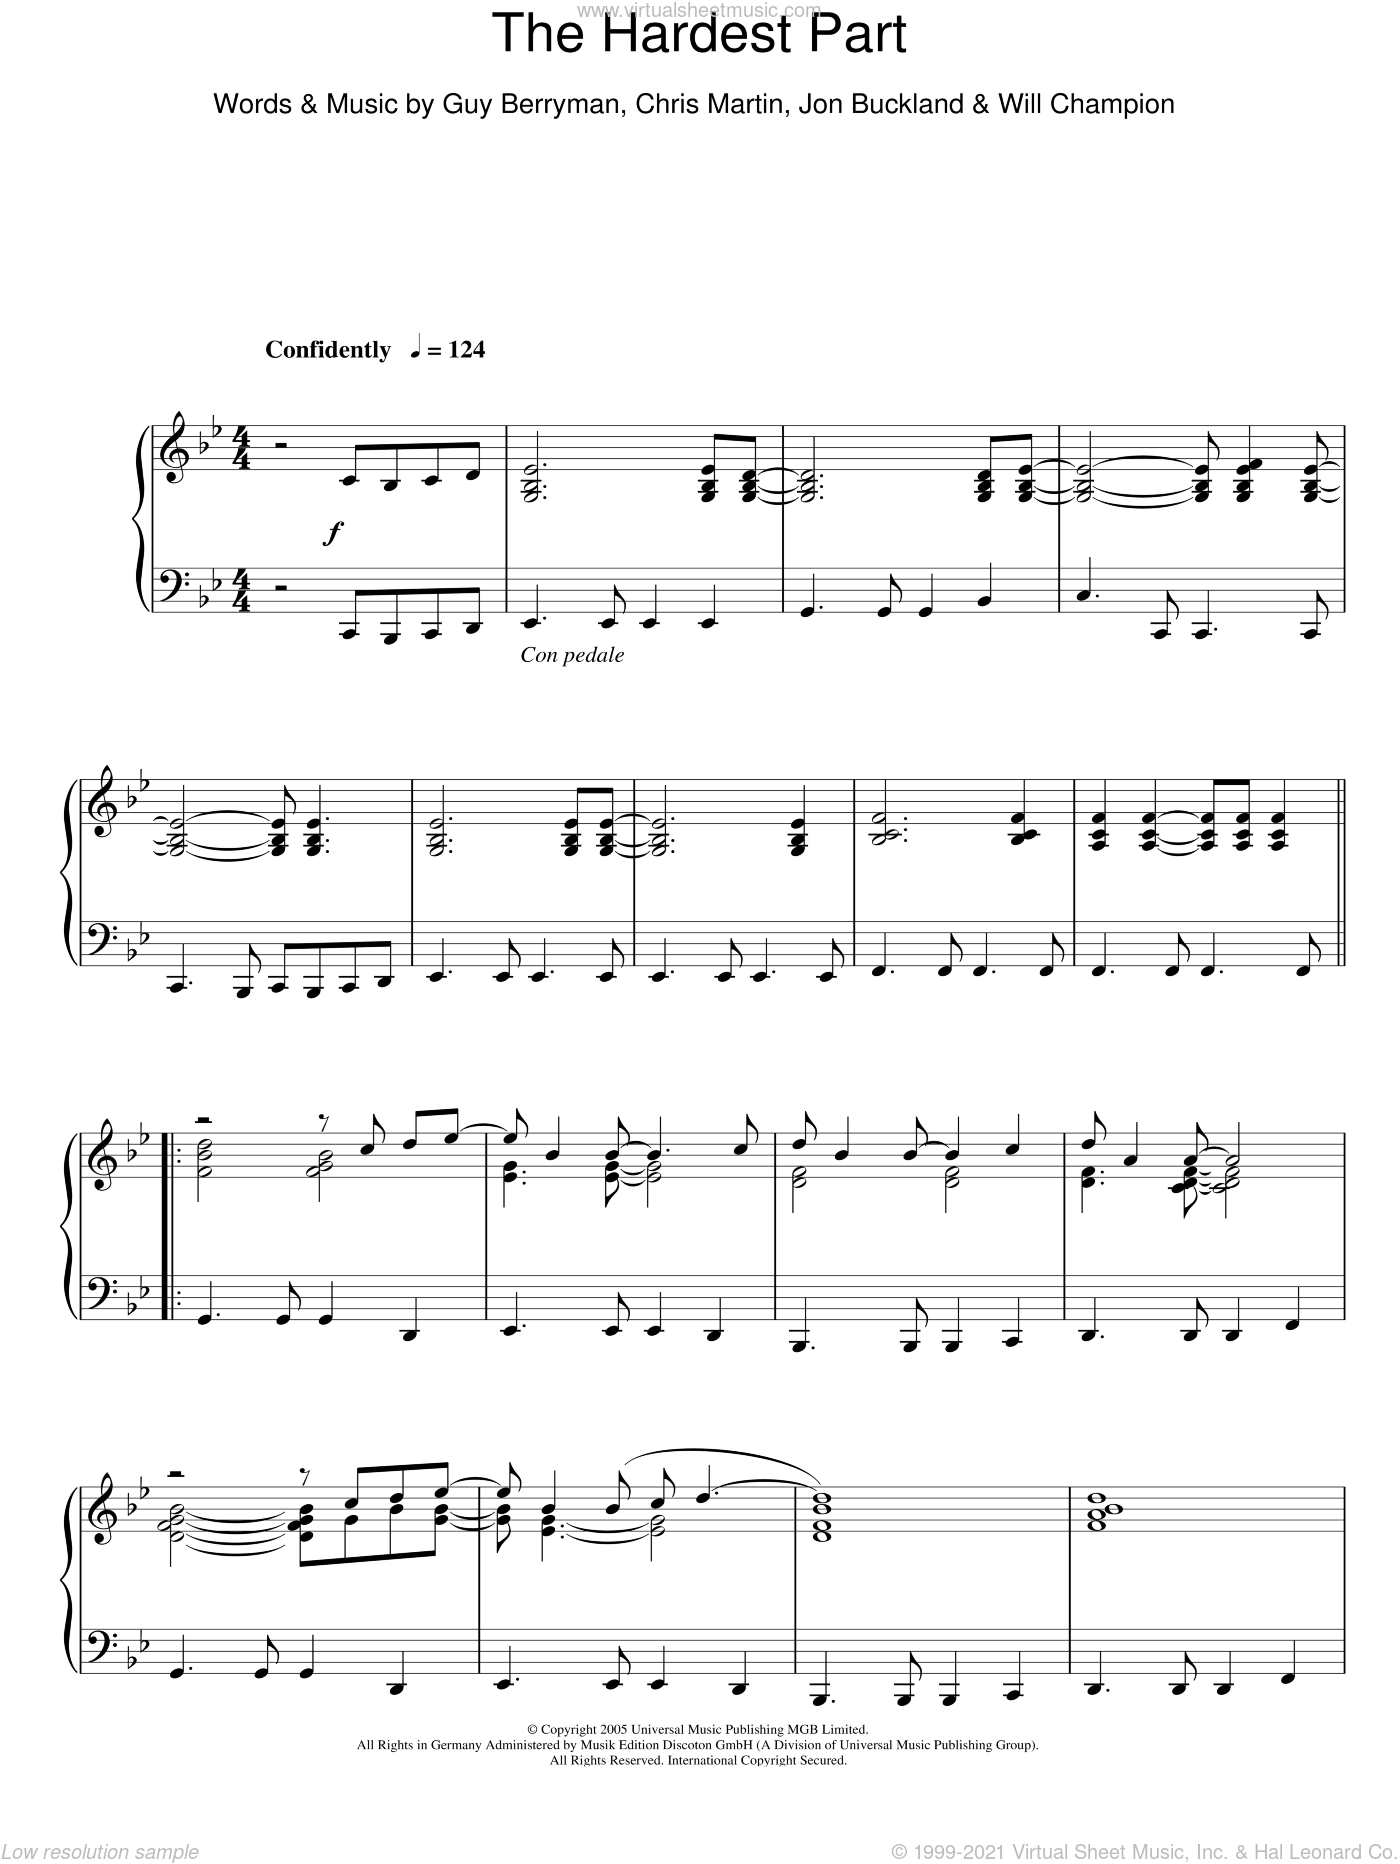 The Hardest Part, (intermediate) sheet music for piano solo by Coldplay, Chris Martin, Guy Berryman, Jon Buckland and Will Champion, intermediate skill level